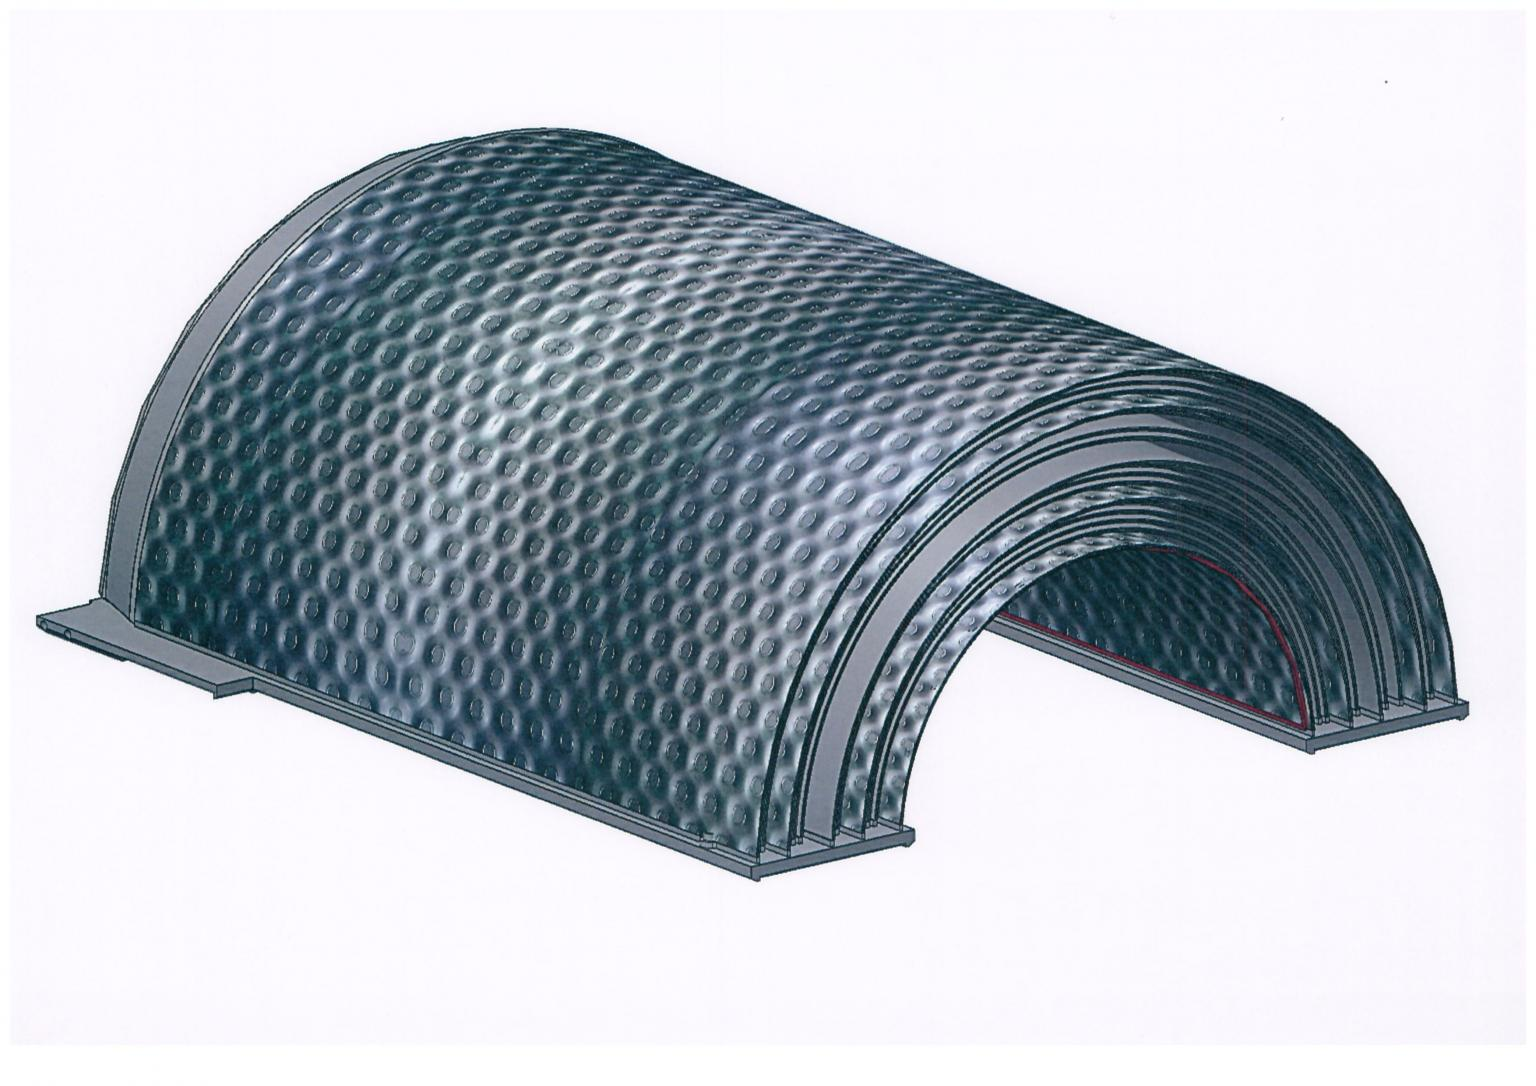 The Flexplate resembles a traditional plate heat exchanger but it has a more diverse range of uses